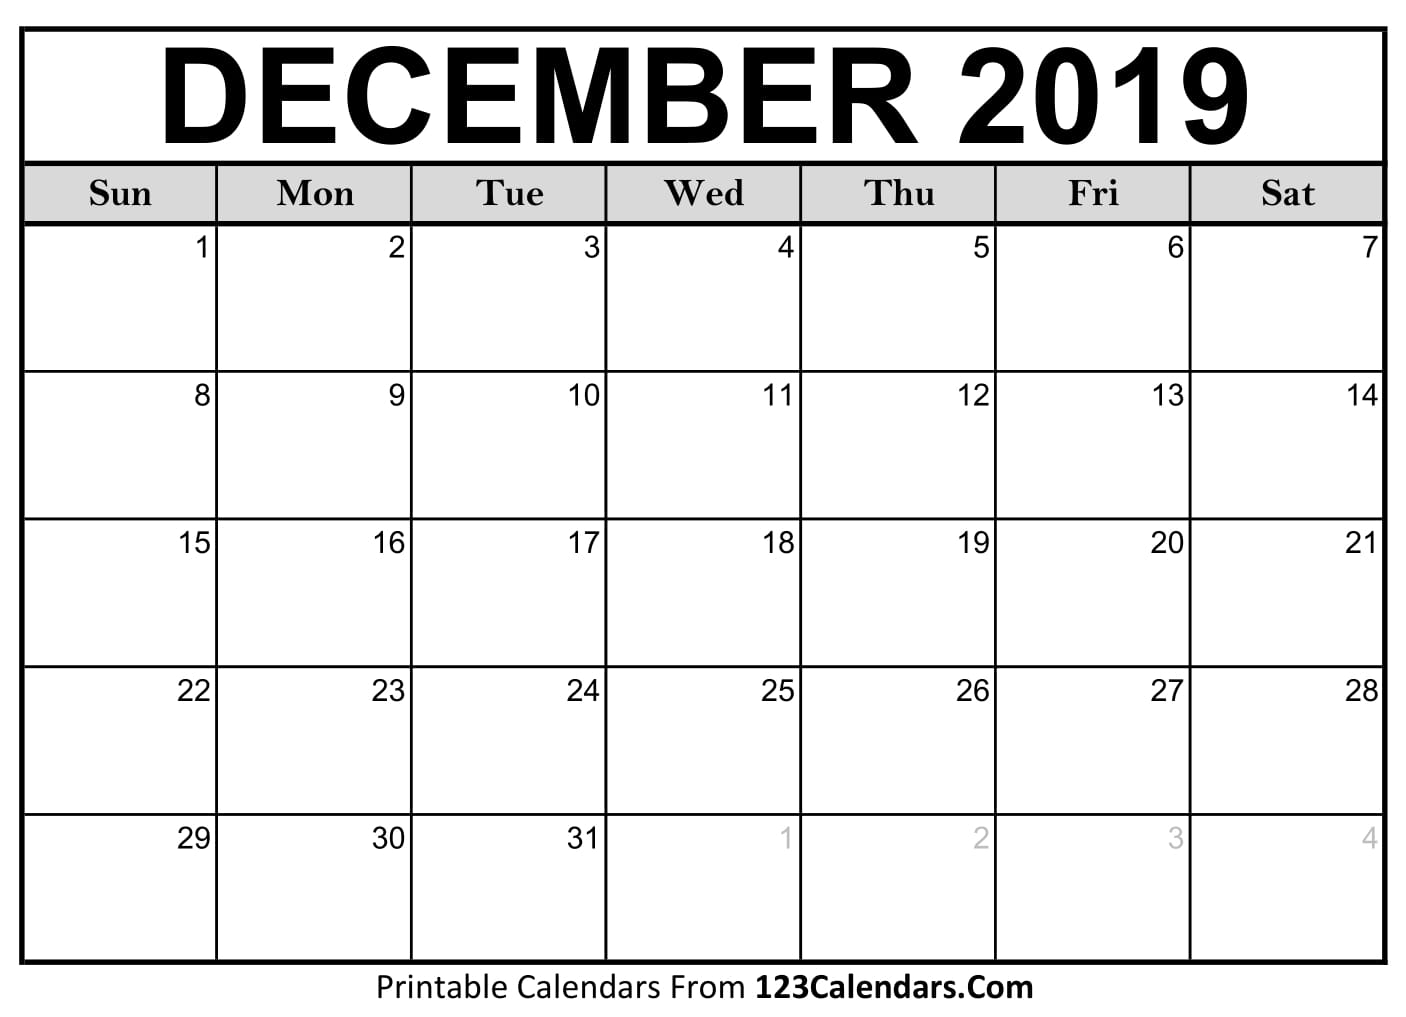 picture regarding Printable December Calendar named December 2019 Printable Calendar